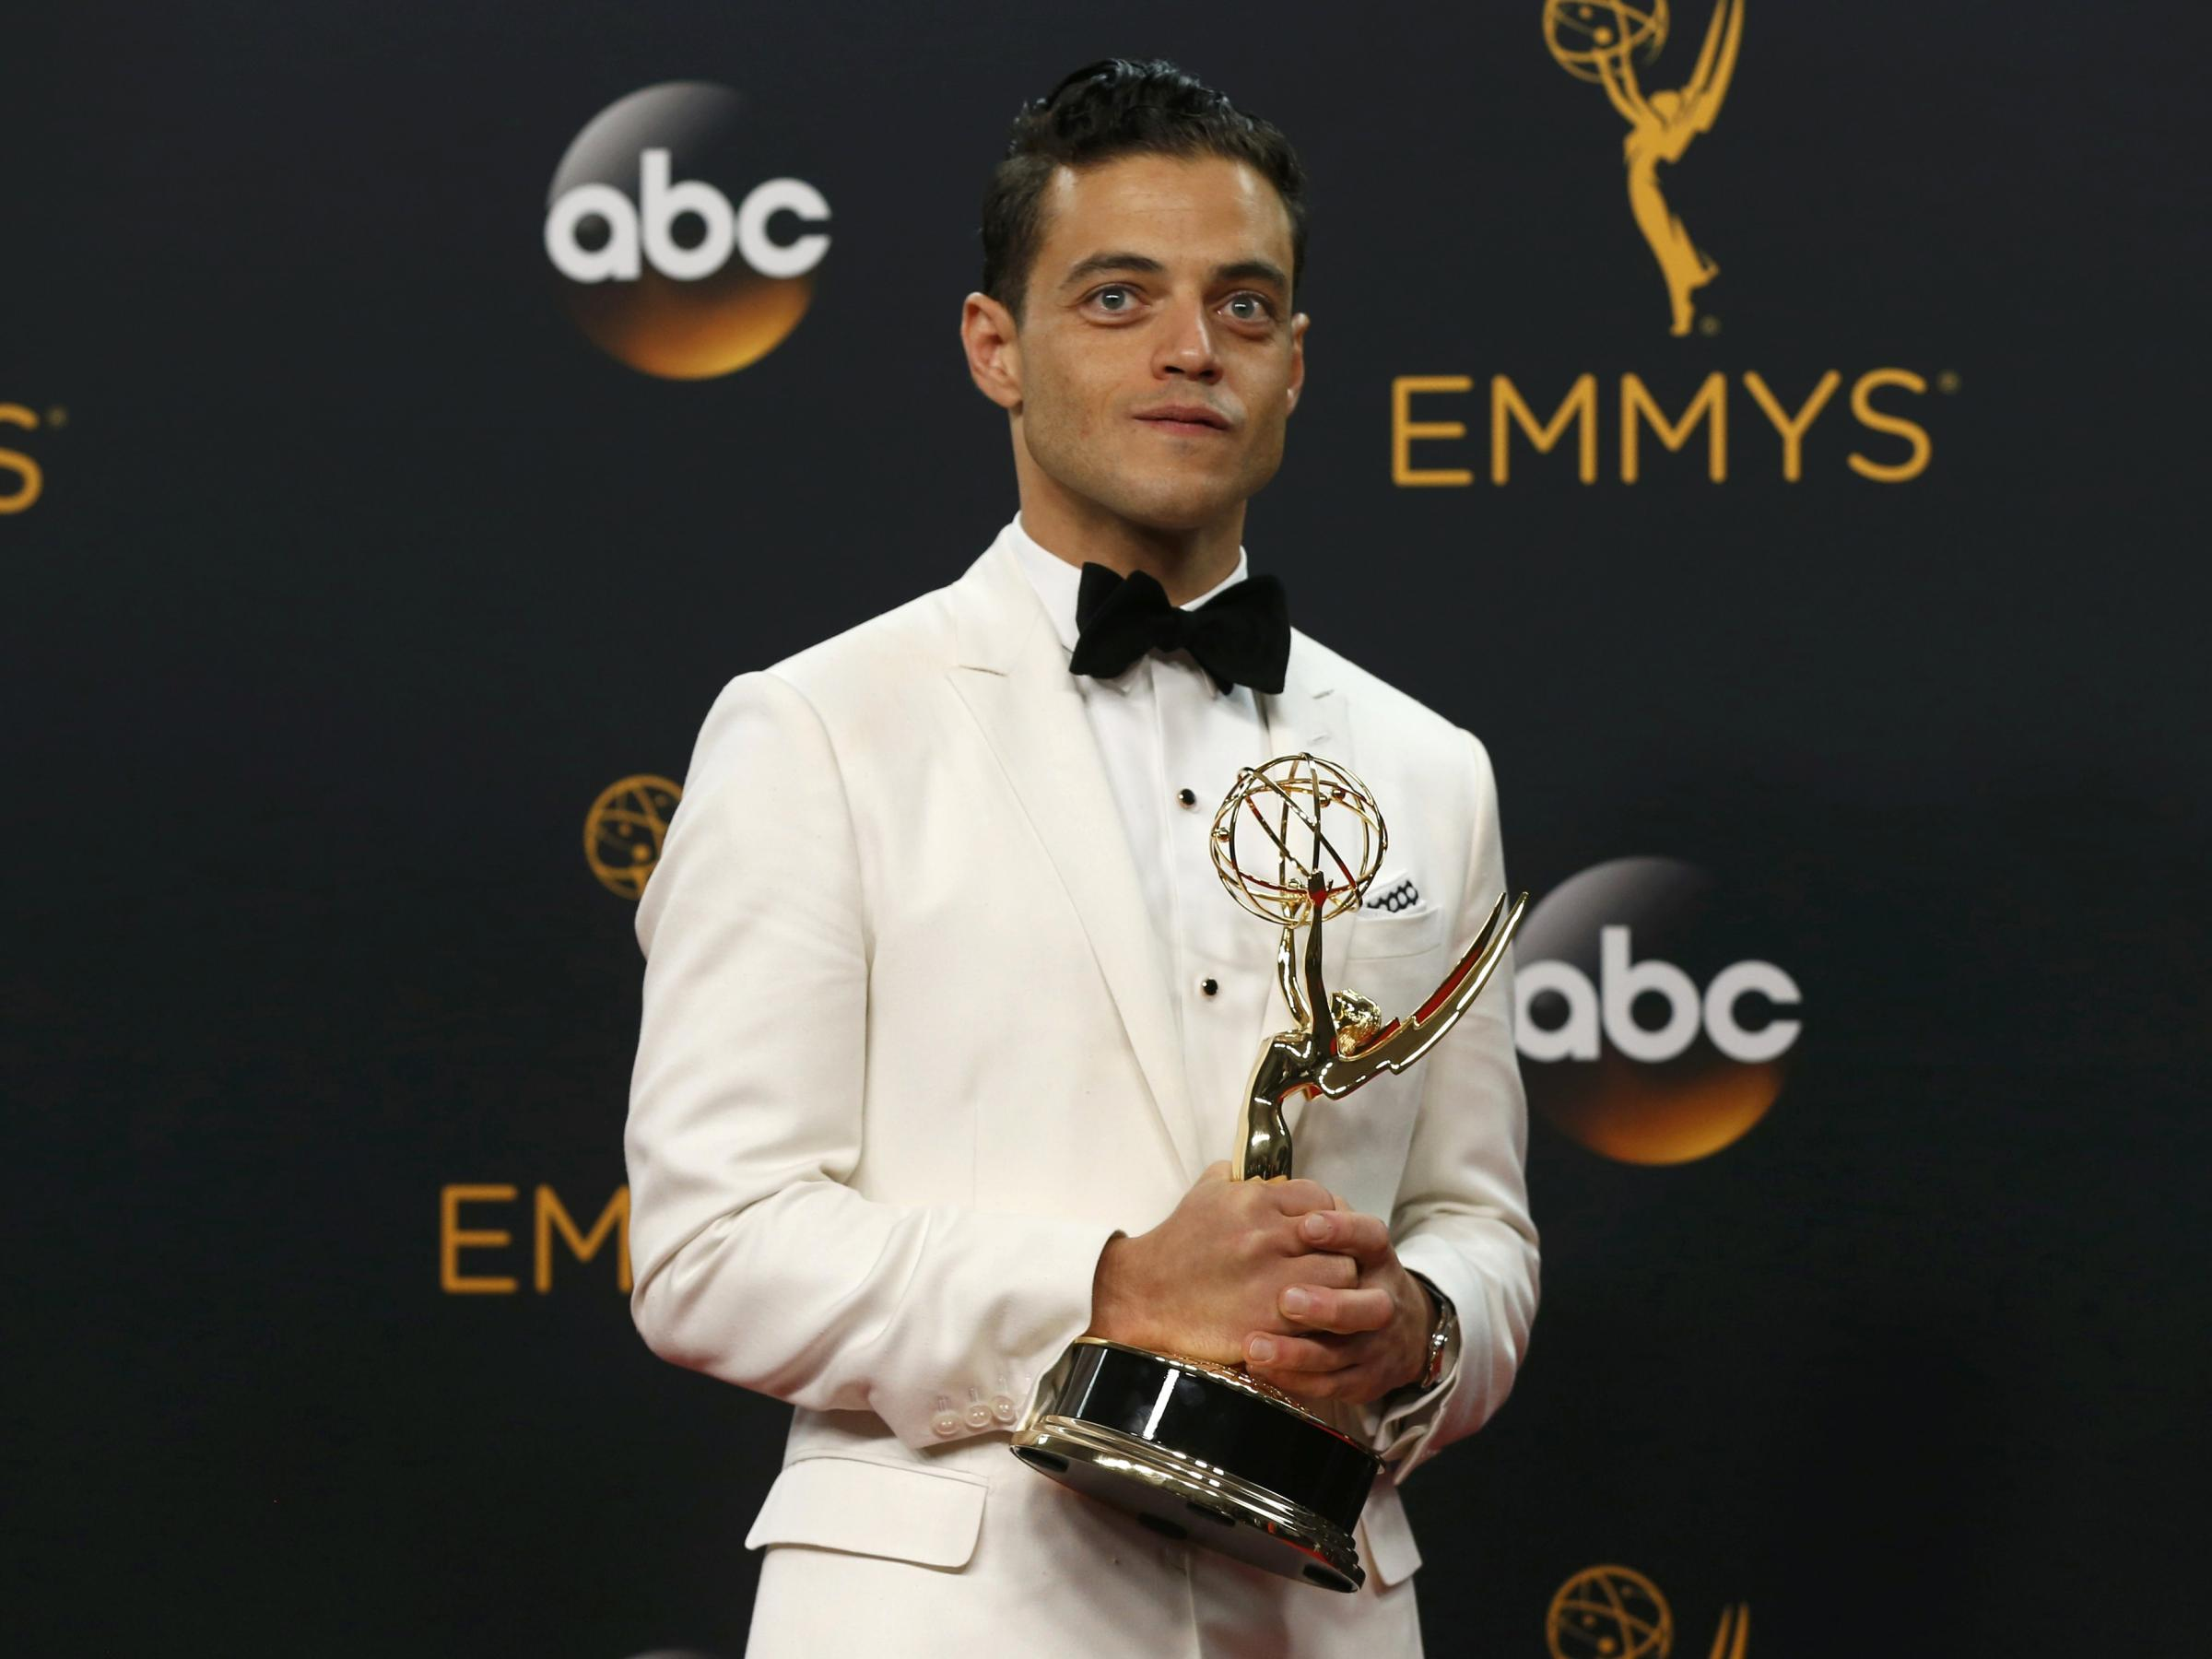 A Los Angeles in scena gli Emmy Awards